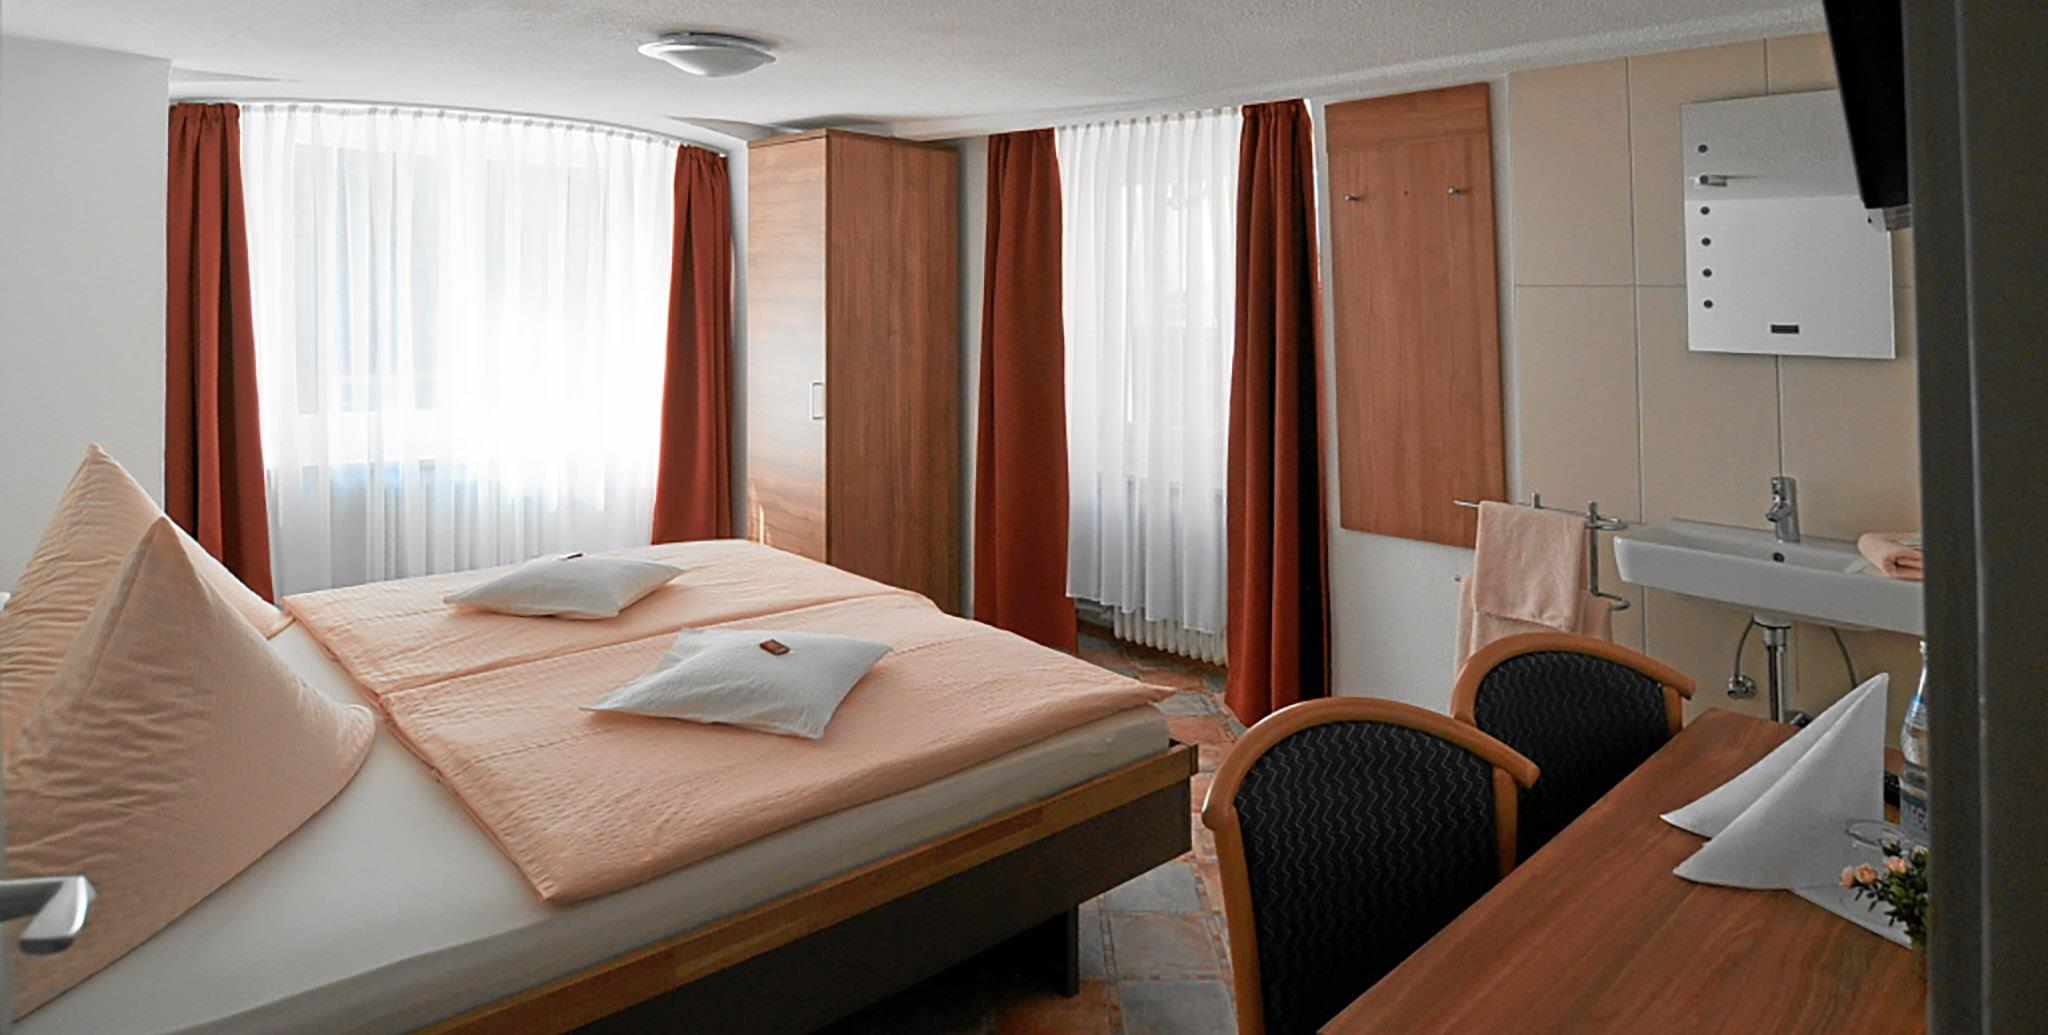 hotel anker ulm hotels ulm neu ulm. Black Bedroom Furniture Sets. Home Design Ideas